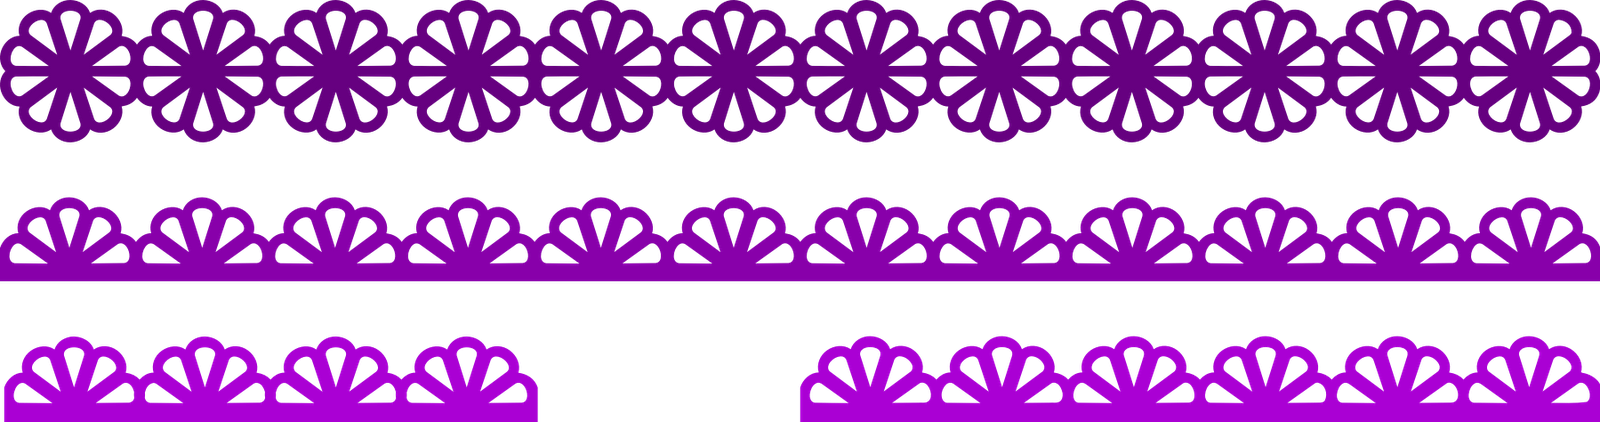 Cut two pieces if. Scalloped border png